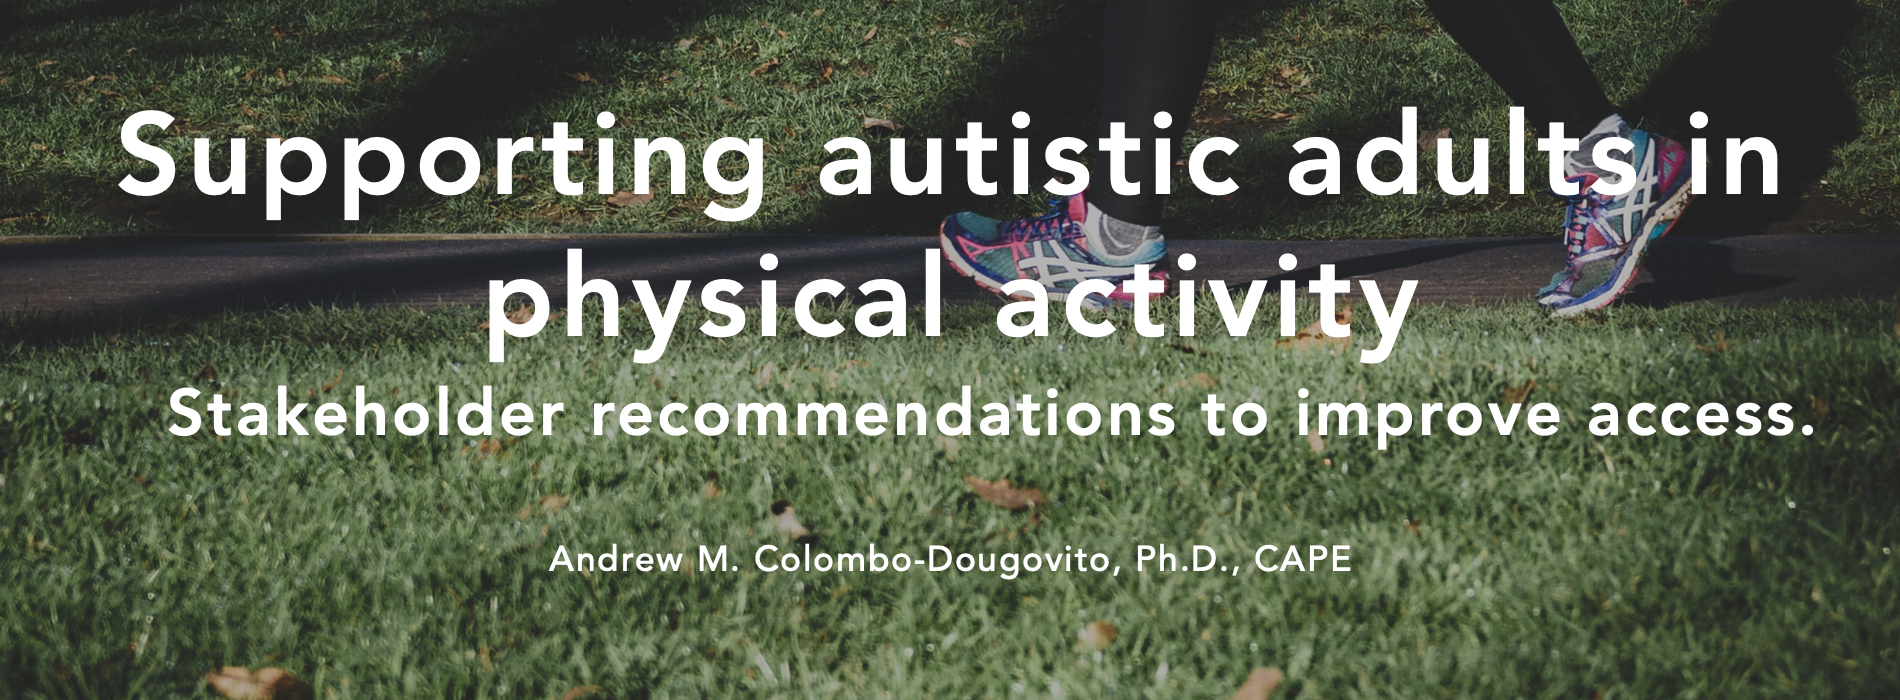 Supporting autistic adults in physical activity: Stakeholder recommendations to improve access